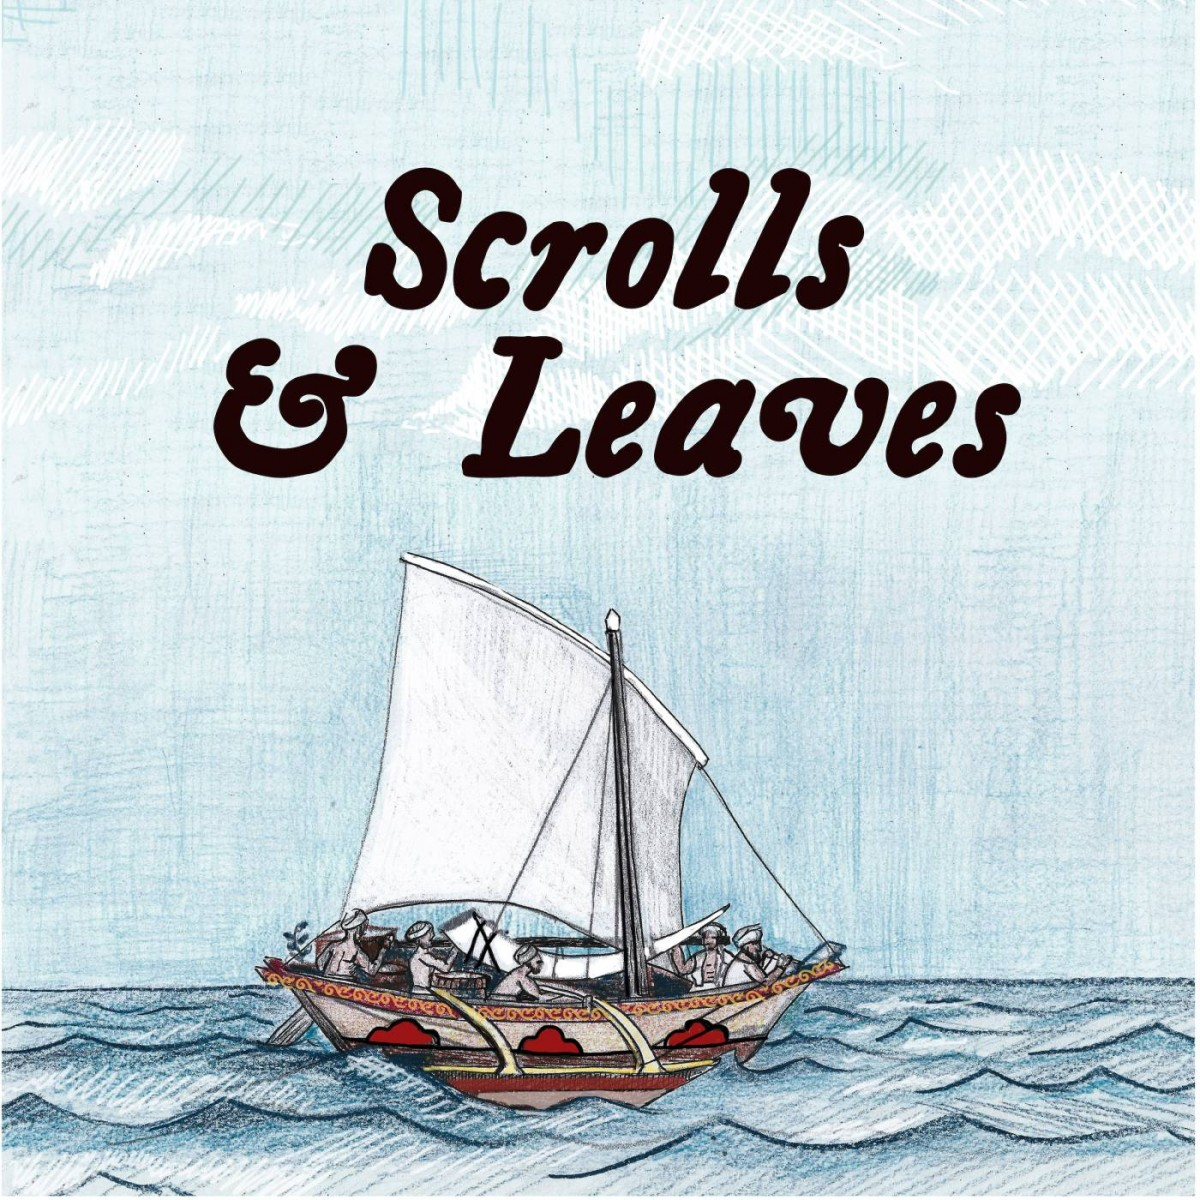 Scrolls and Leaves